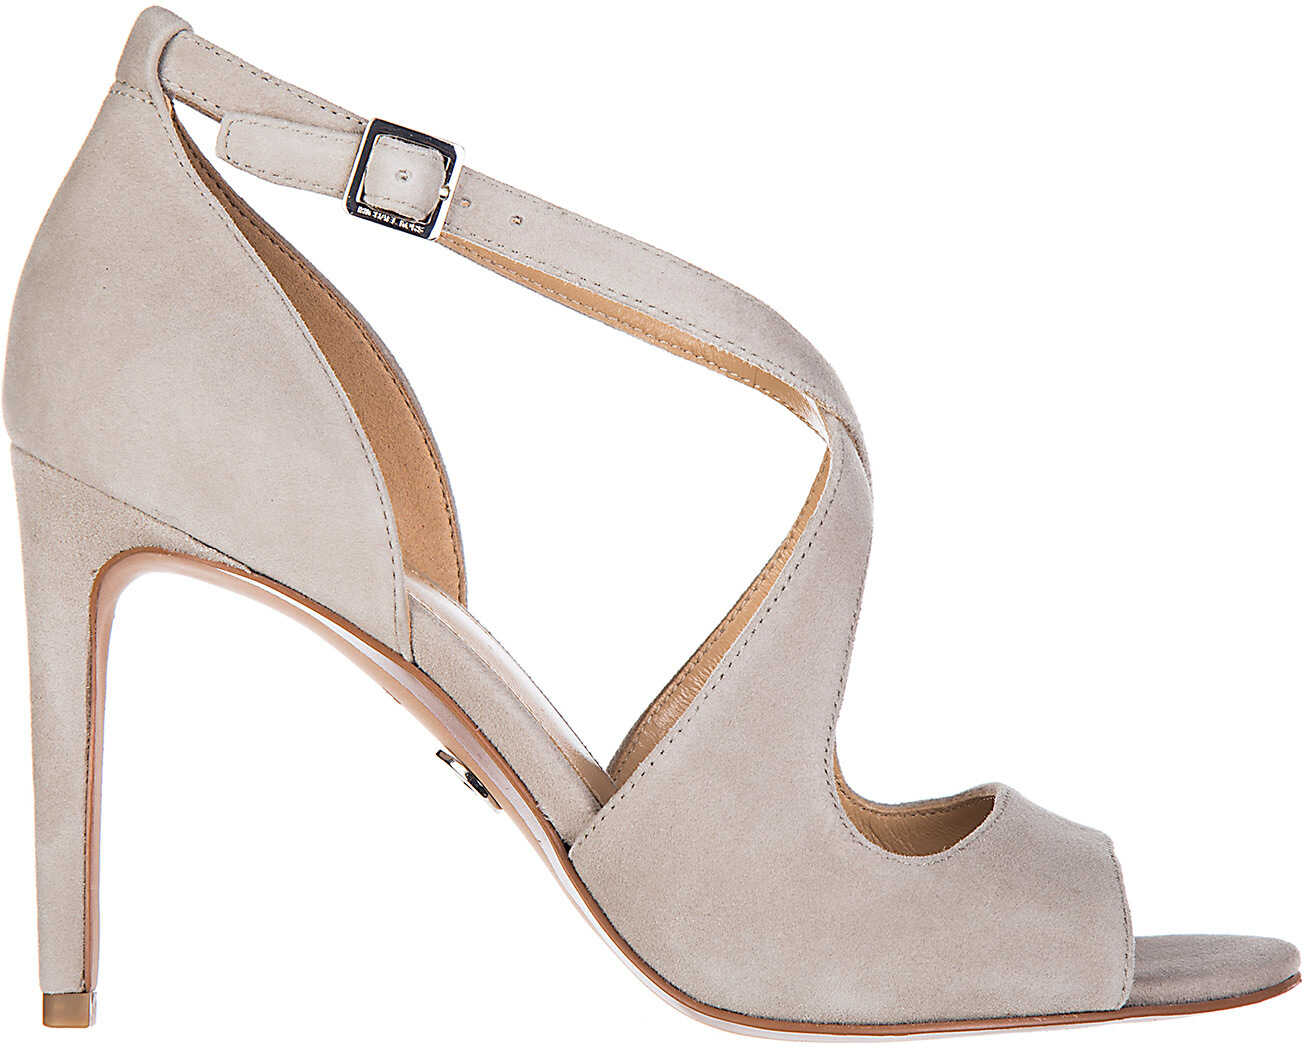 Michael Kors Sandals Estee Grey